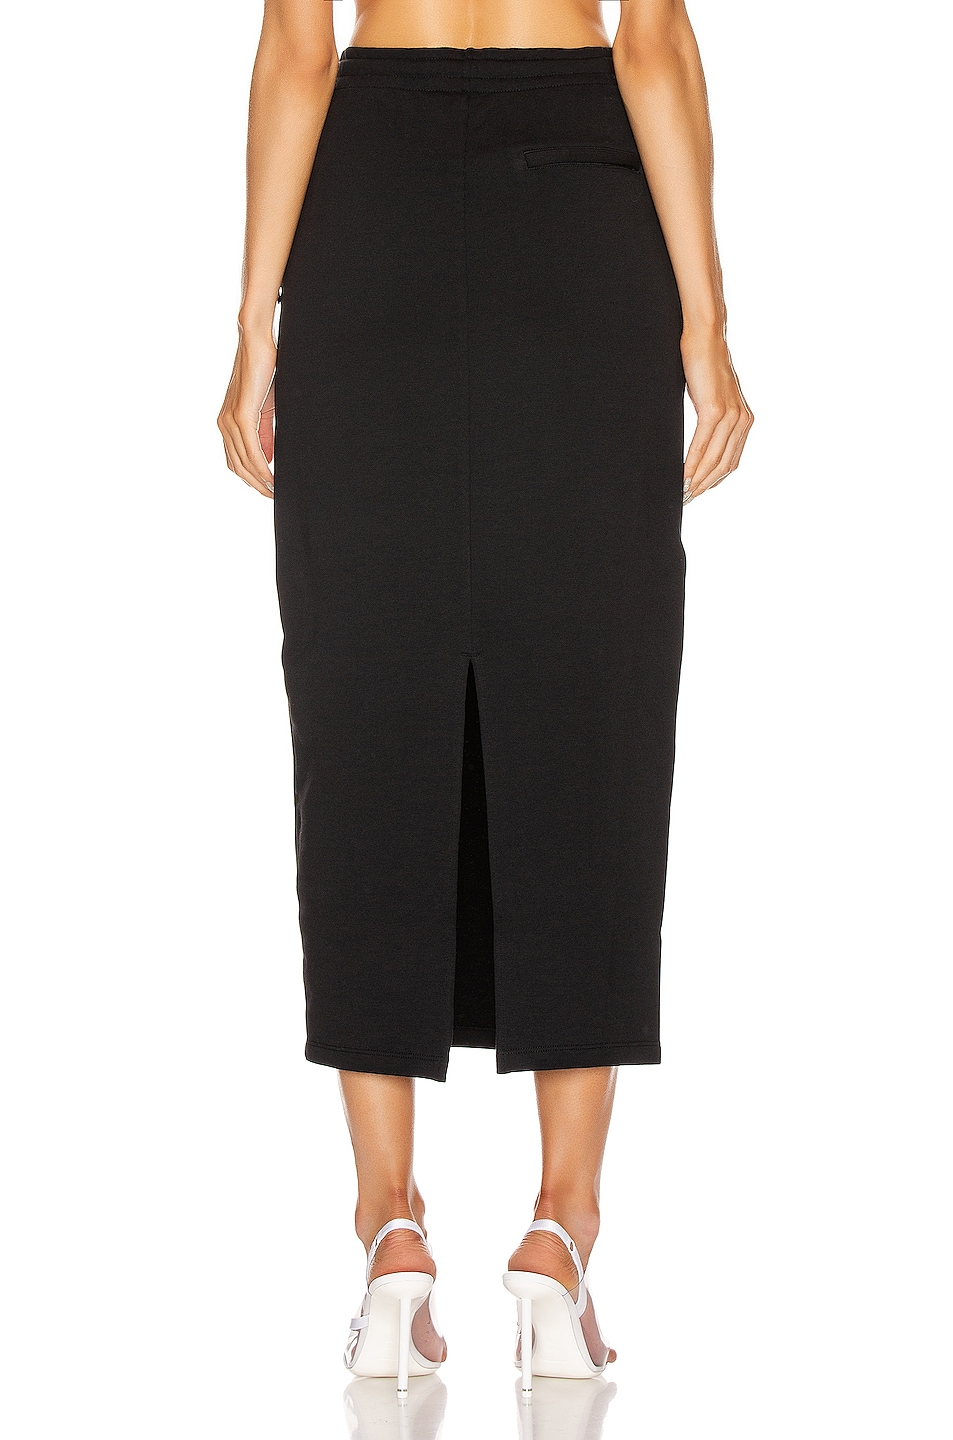 Image 4 of T by Alexander Wang Dry French Terry Skirt in Black